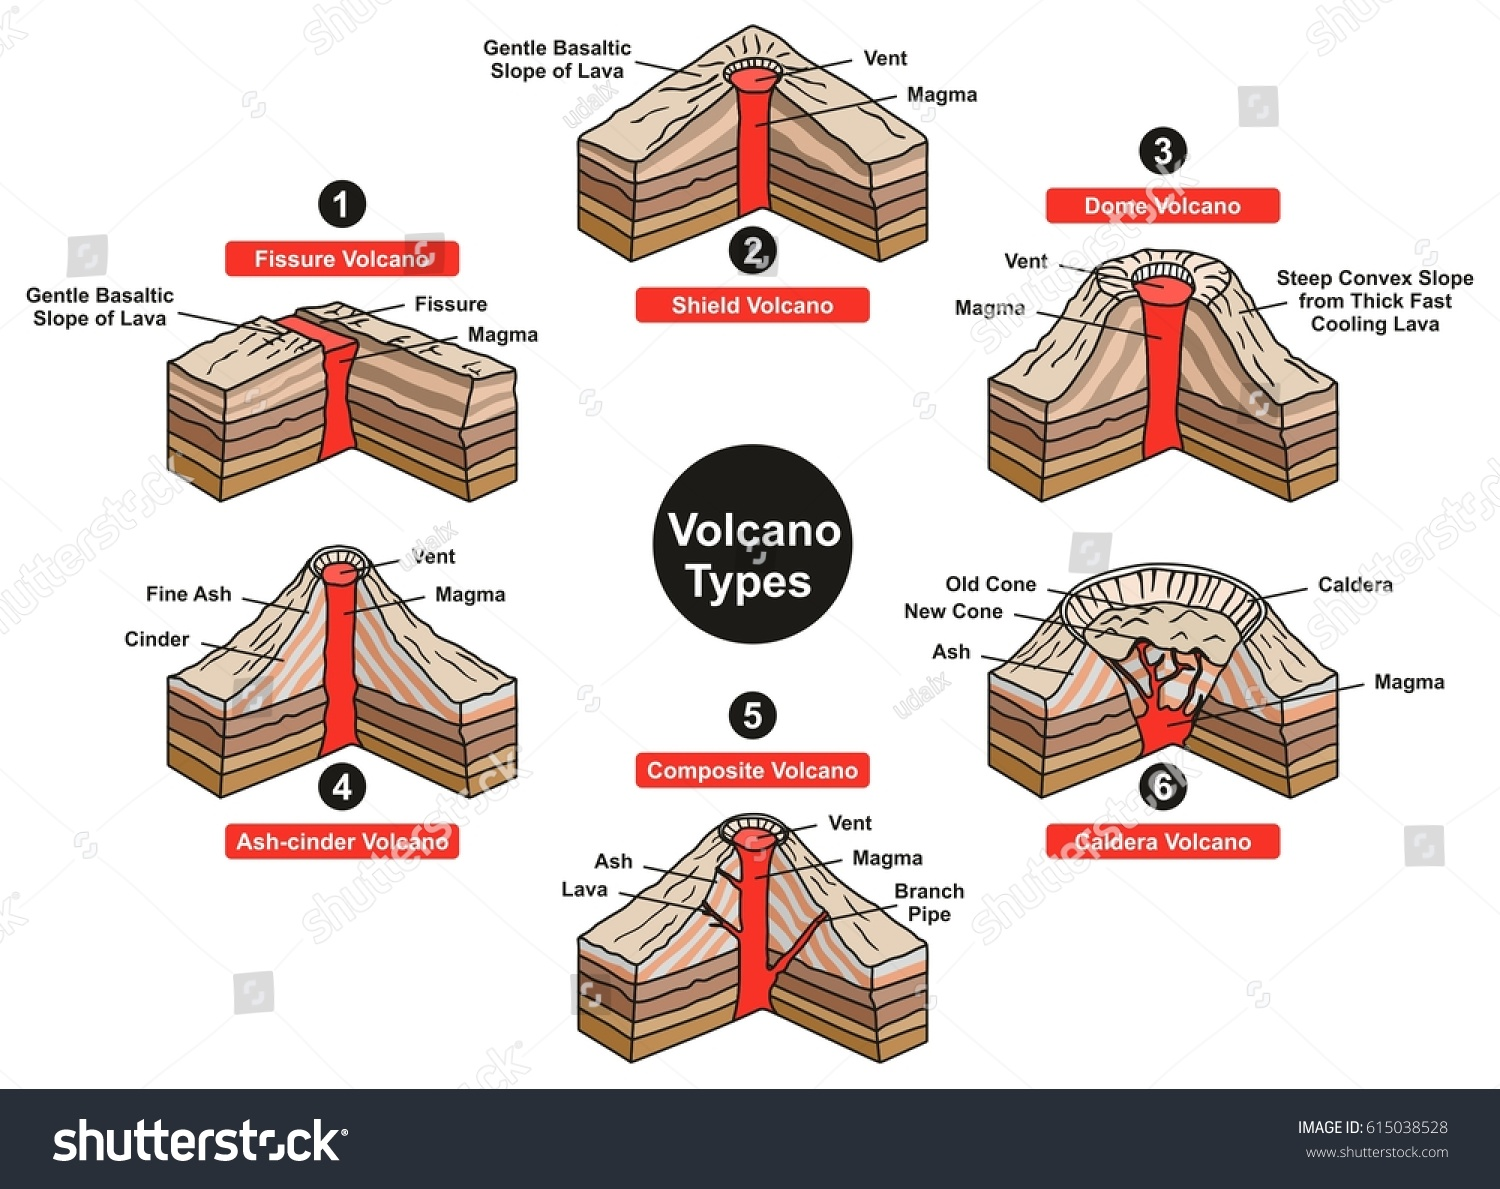 Volcano Types Infographic Diagram Including Fissure Stock